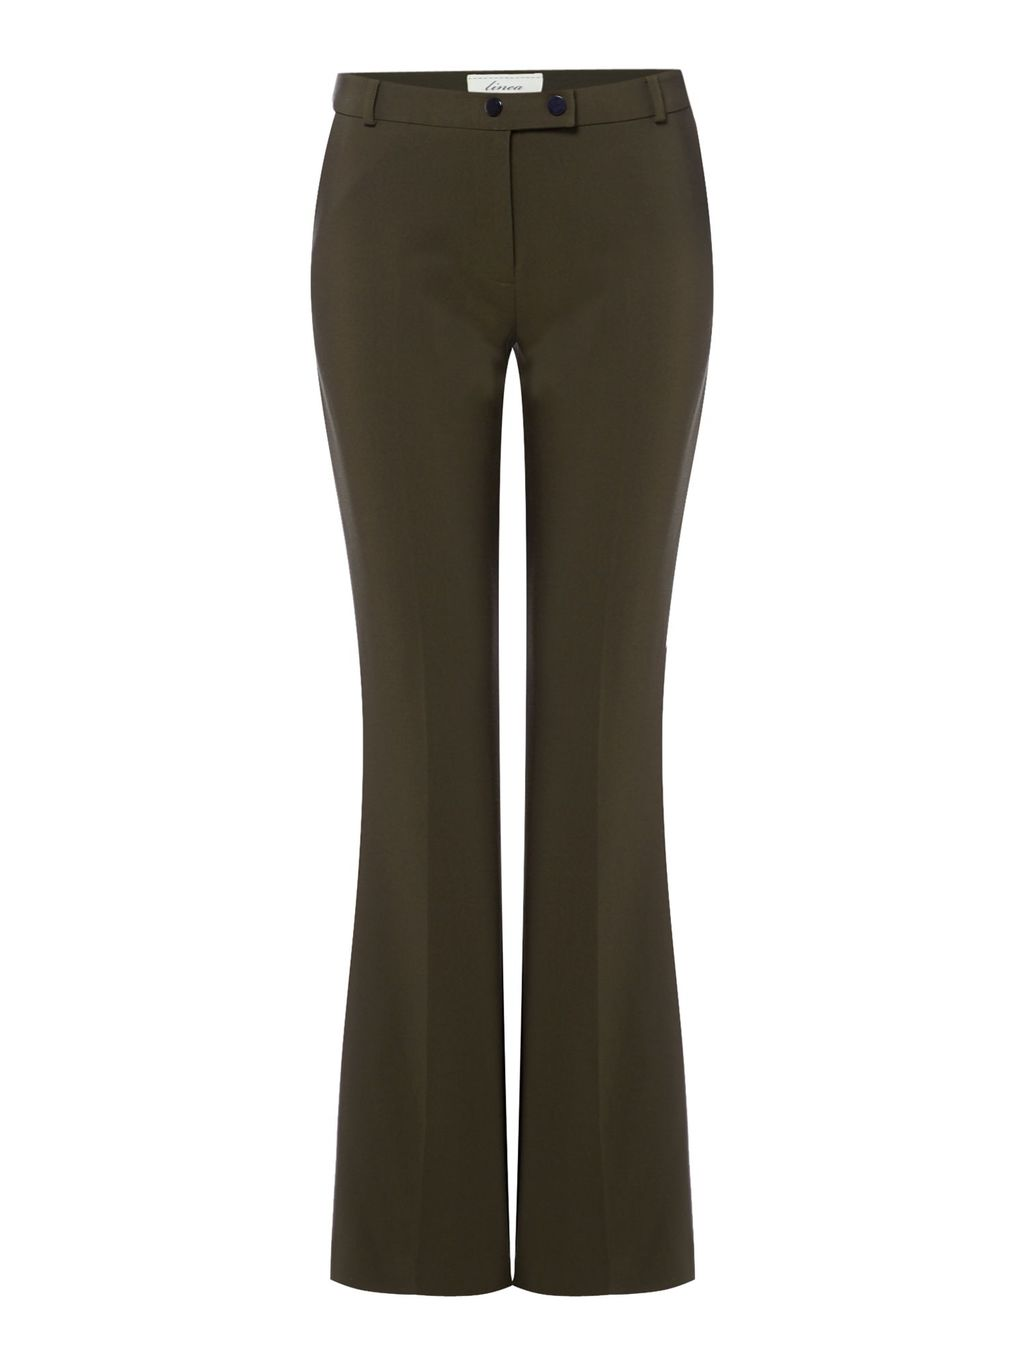 Elle Bootcut Trouser, Khaki - length: standard; pattern: plain; waist: mid/regular rise; predominant colour: khaki; occasions: casual, creative work; fibres: polyester/polyamide - stretch; fit: flares; pattern type: fabric; texture group: other - light to midweight; style: standard; season: s/s 2016; wardrobe: basic